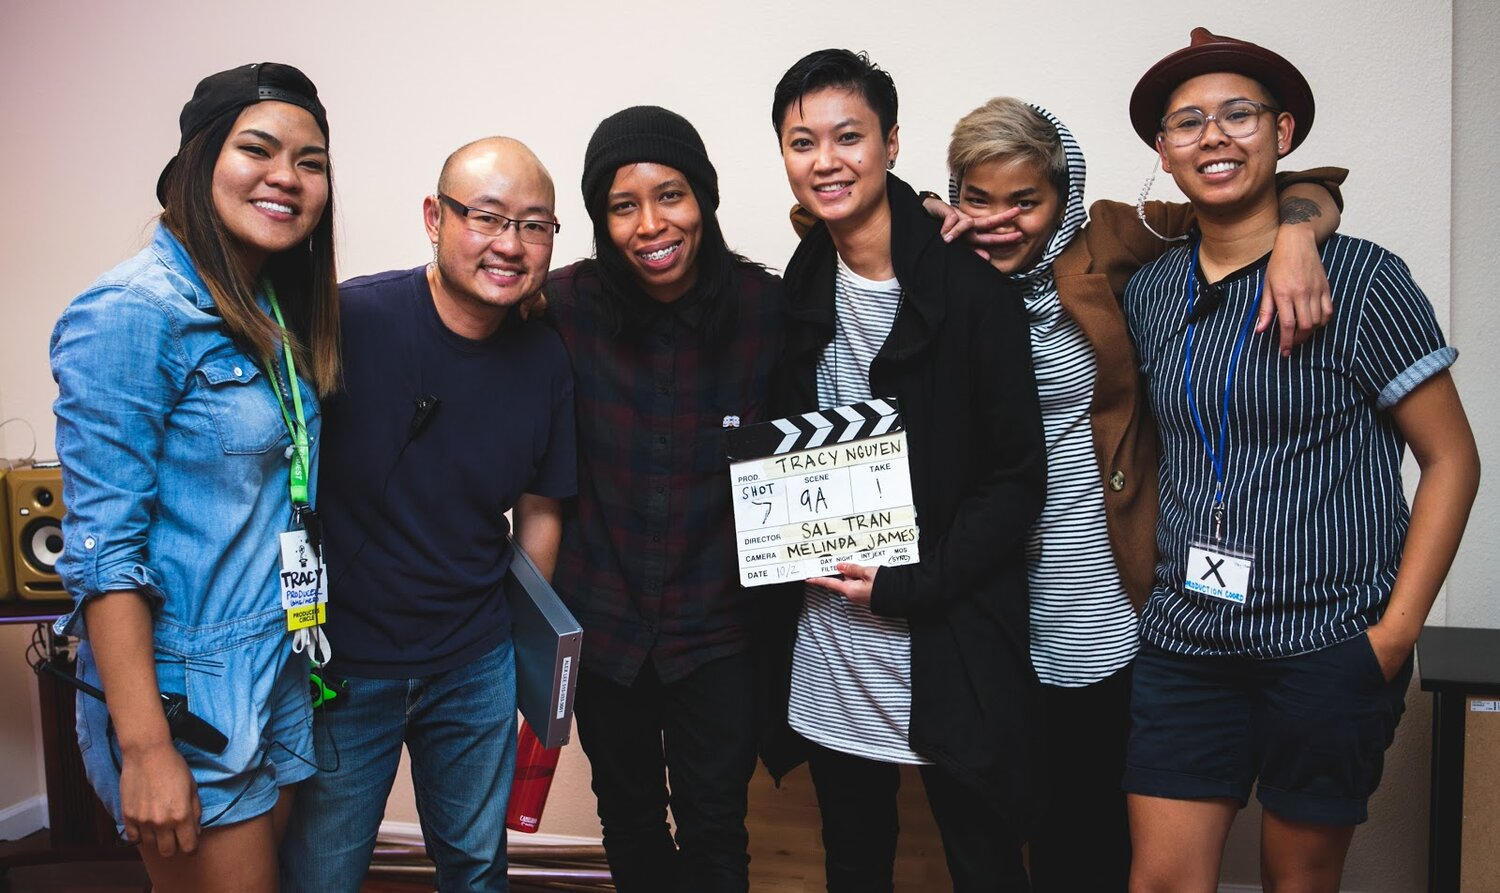 Six people smile with their arms wrapped around one another. At the center is a film slate. Alex Lee is pictured second from the left]